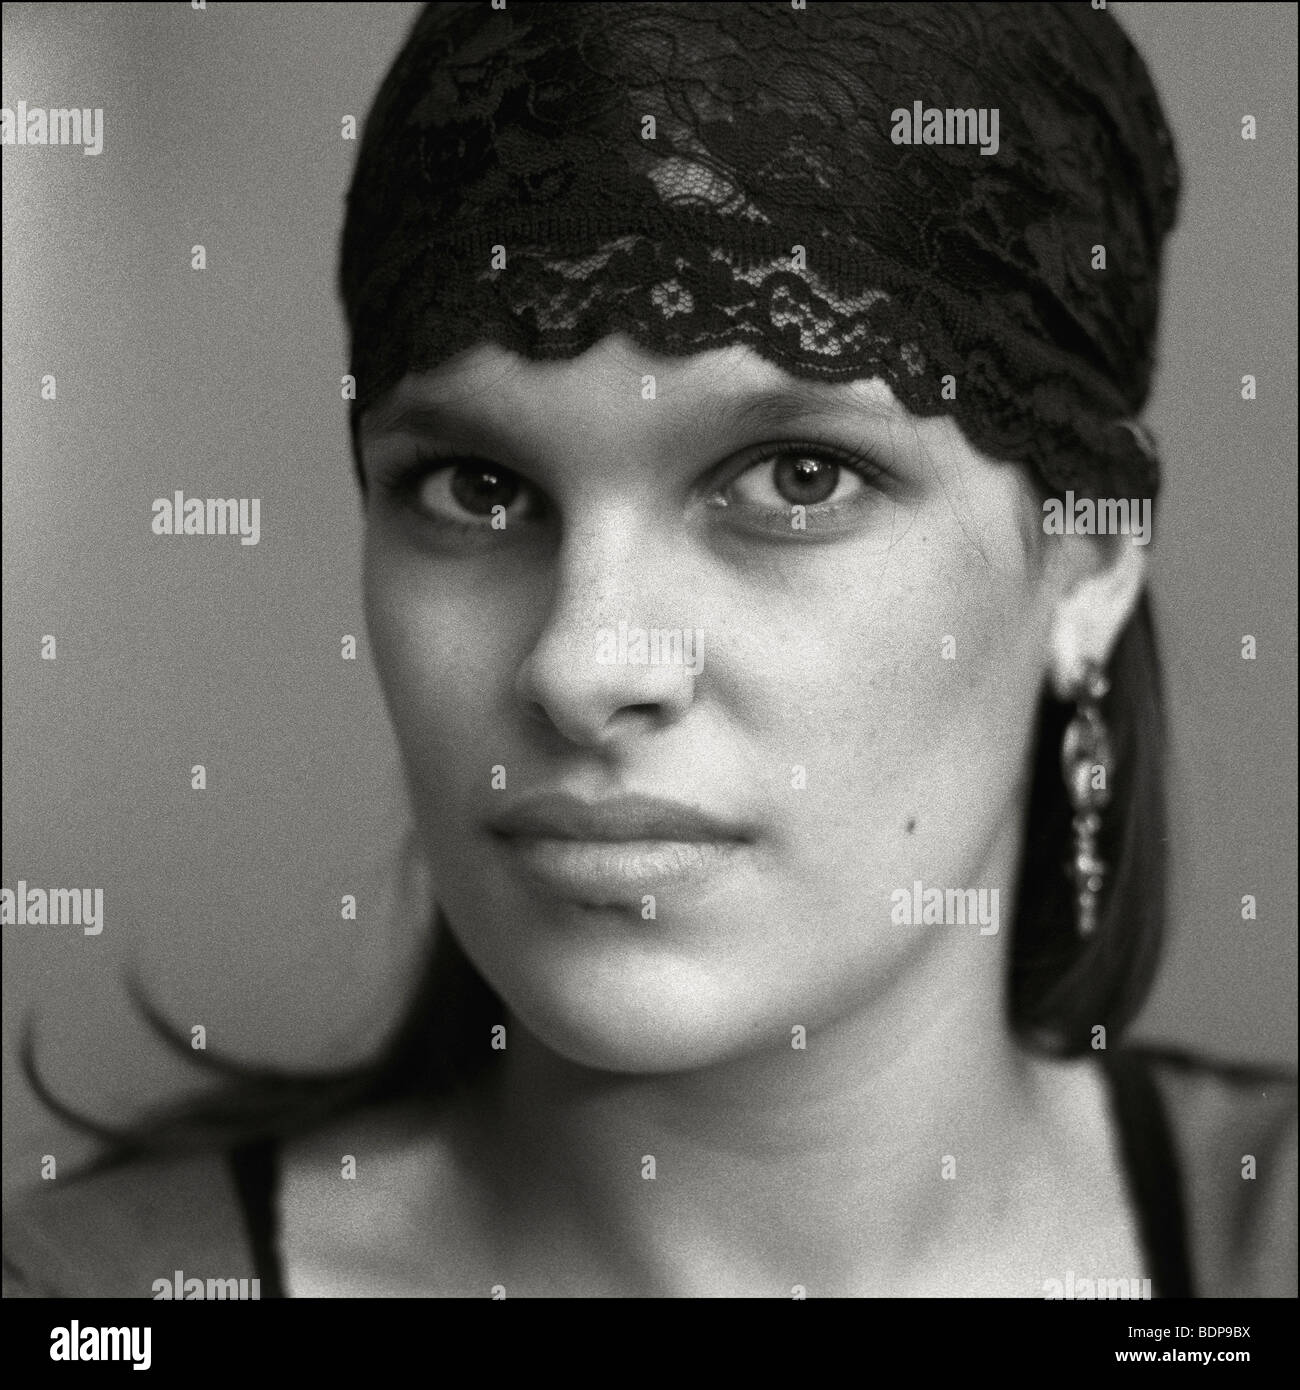 A woman with strong features wearing a black lace headband - Stock Image